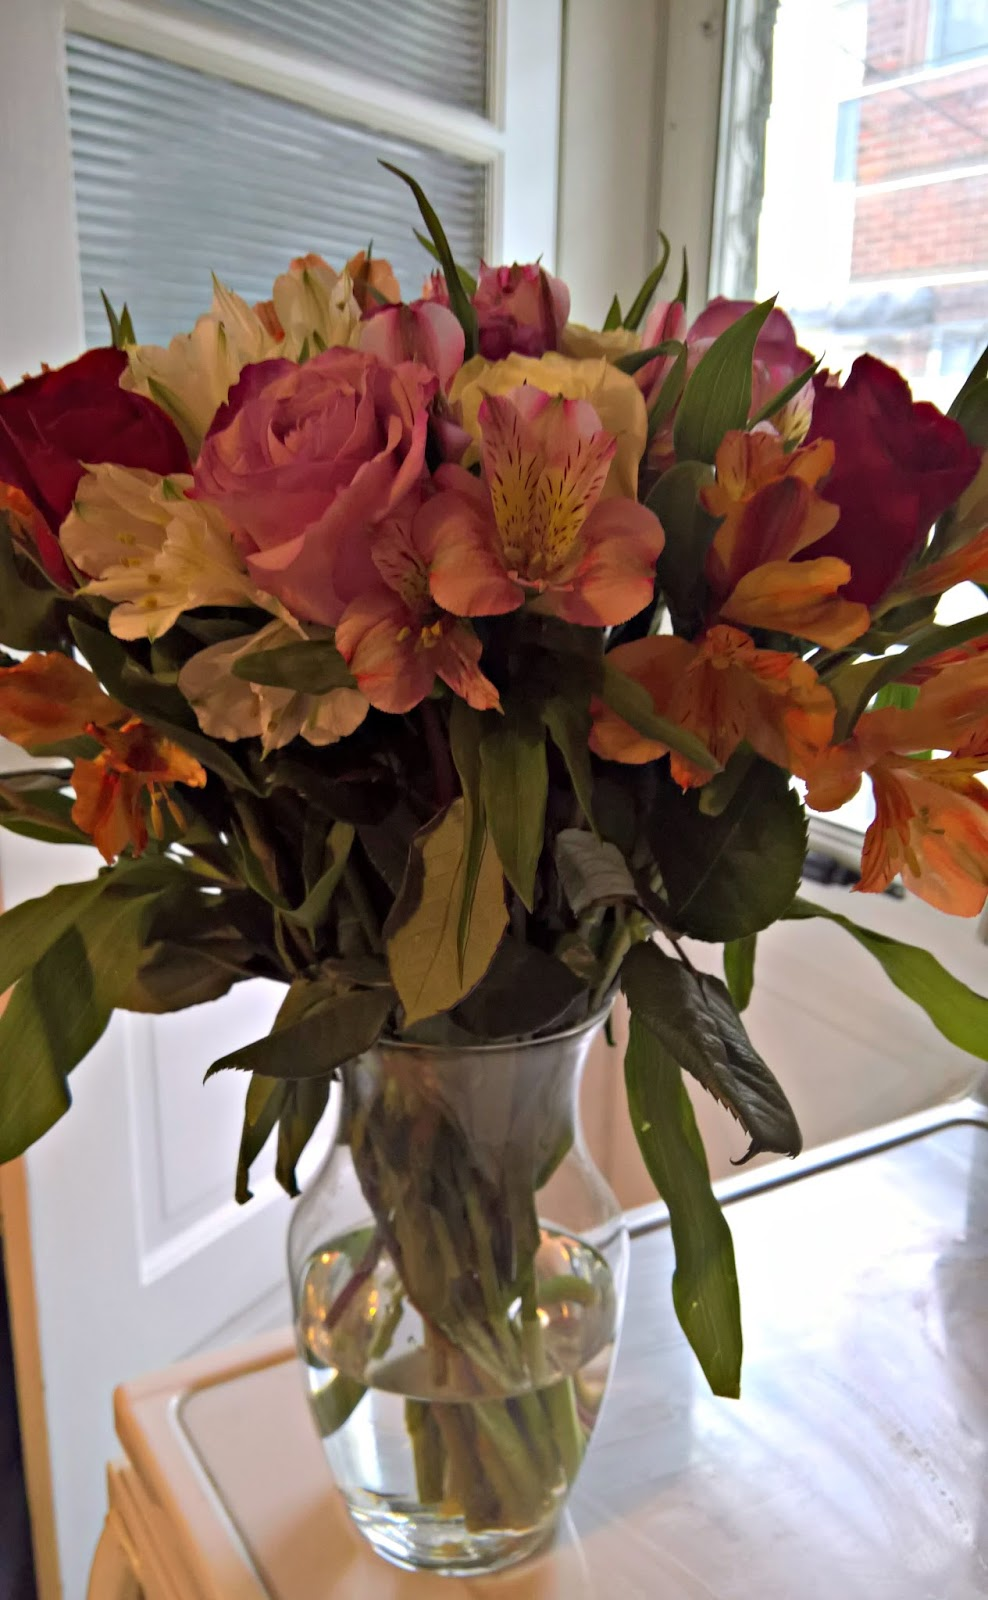 Susans disney family say goodbye to the blues and smile with a the generous folks at proflowers are giving one of susans disney family readers a chance to have a better day with the delivery of a beautiful bouquet reviewsmspy